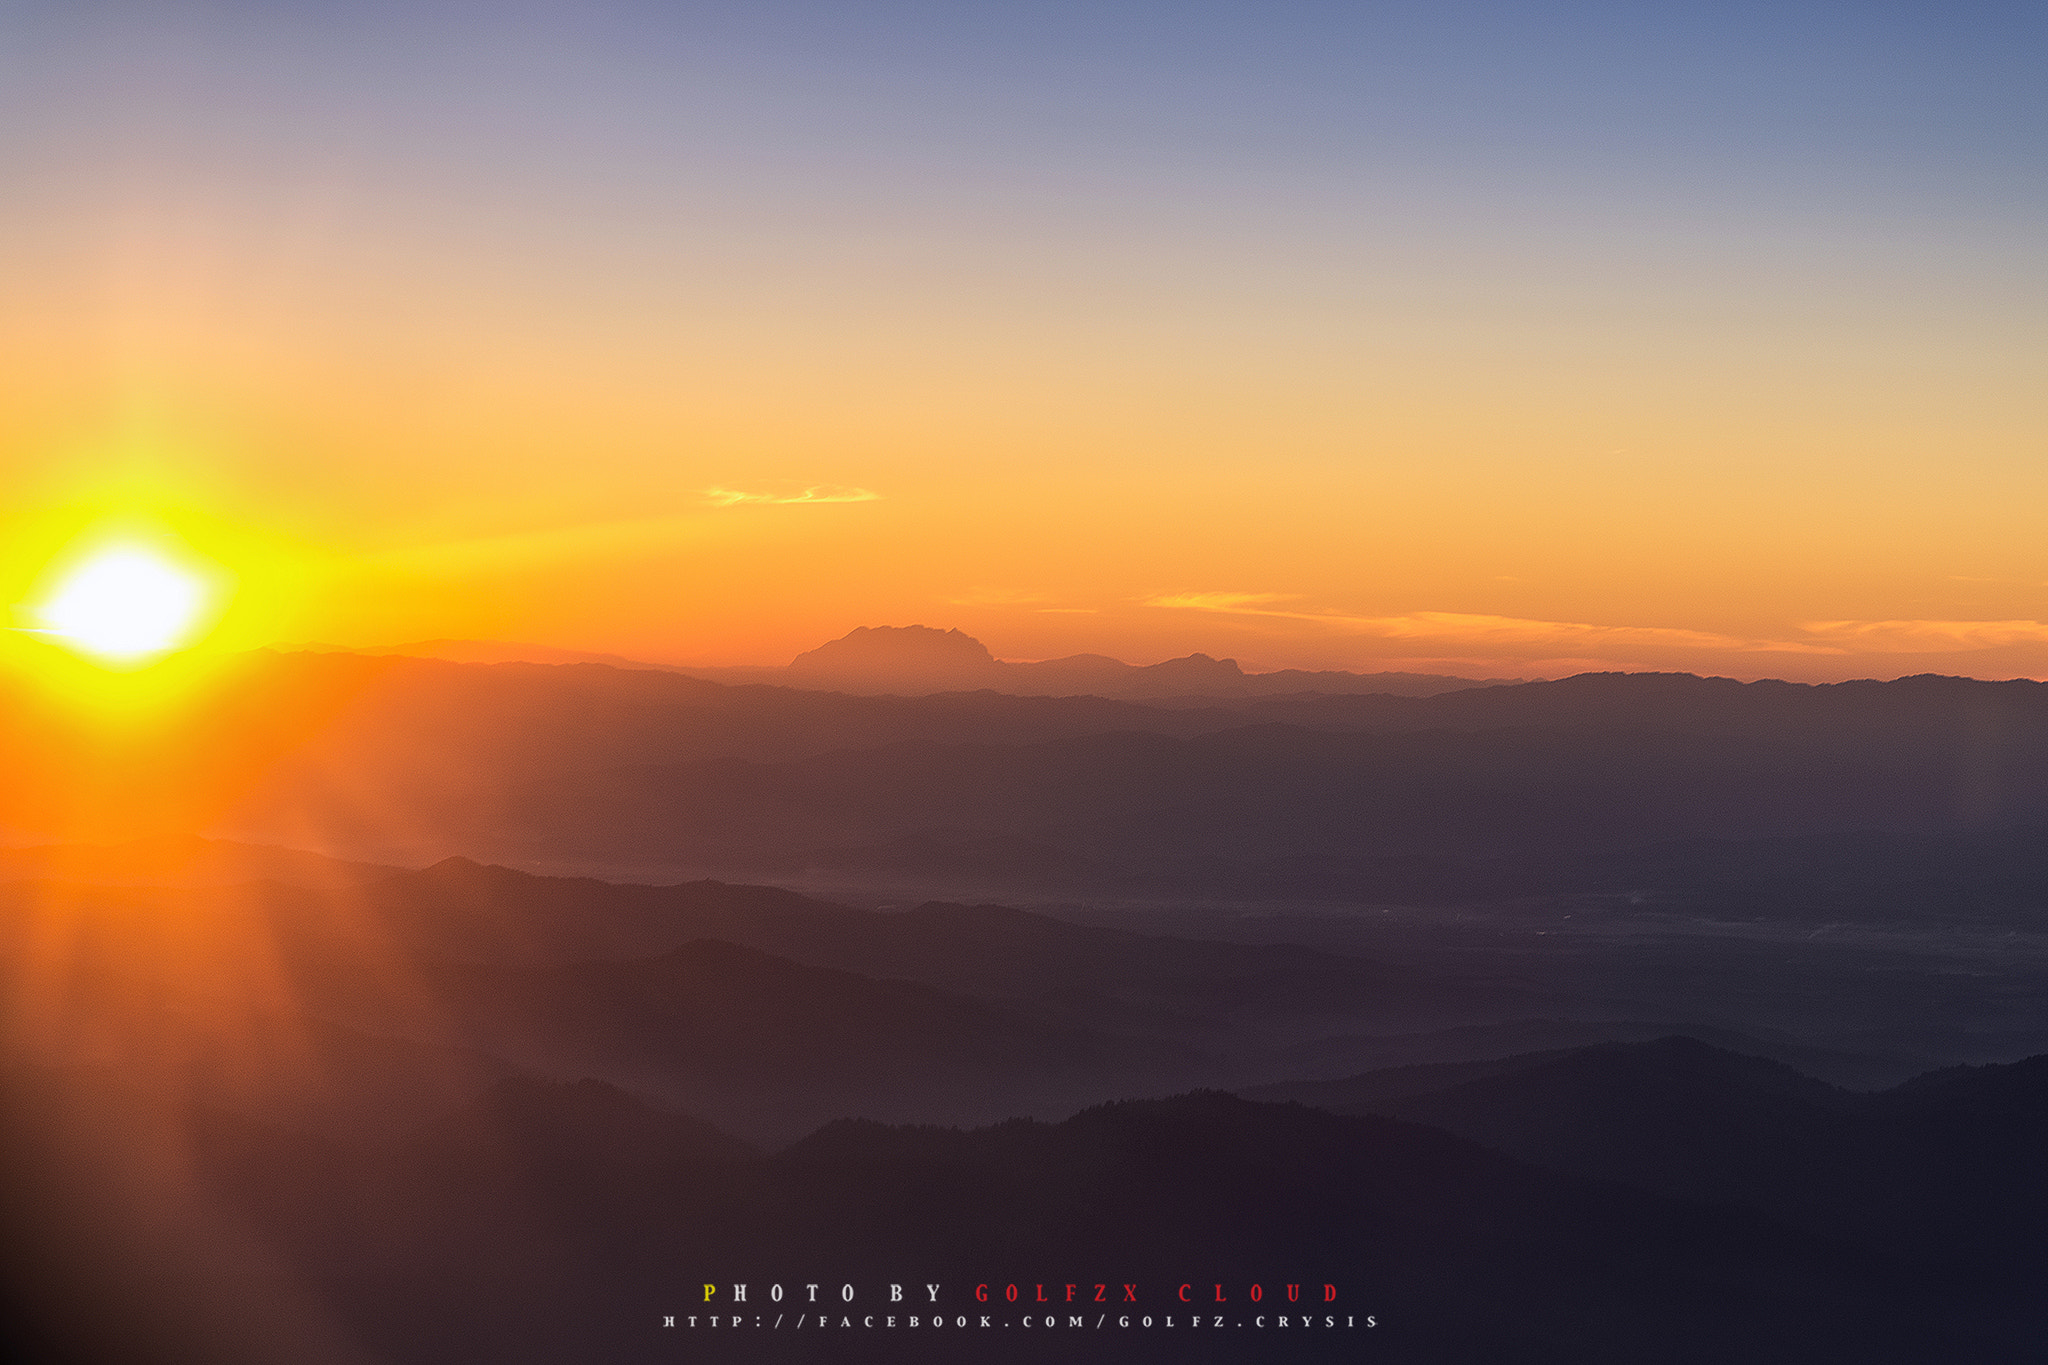 Photograph Sunset by Golfzx Cloud on 500px